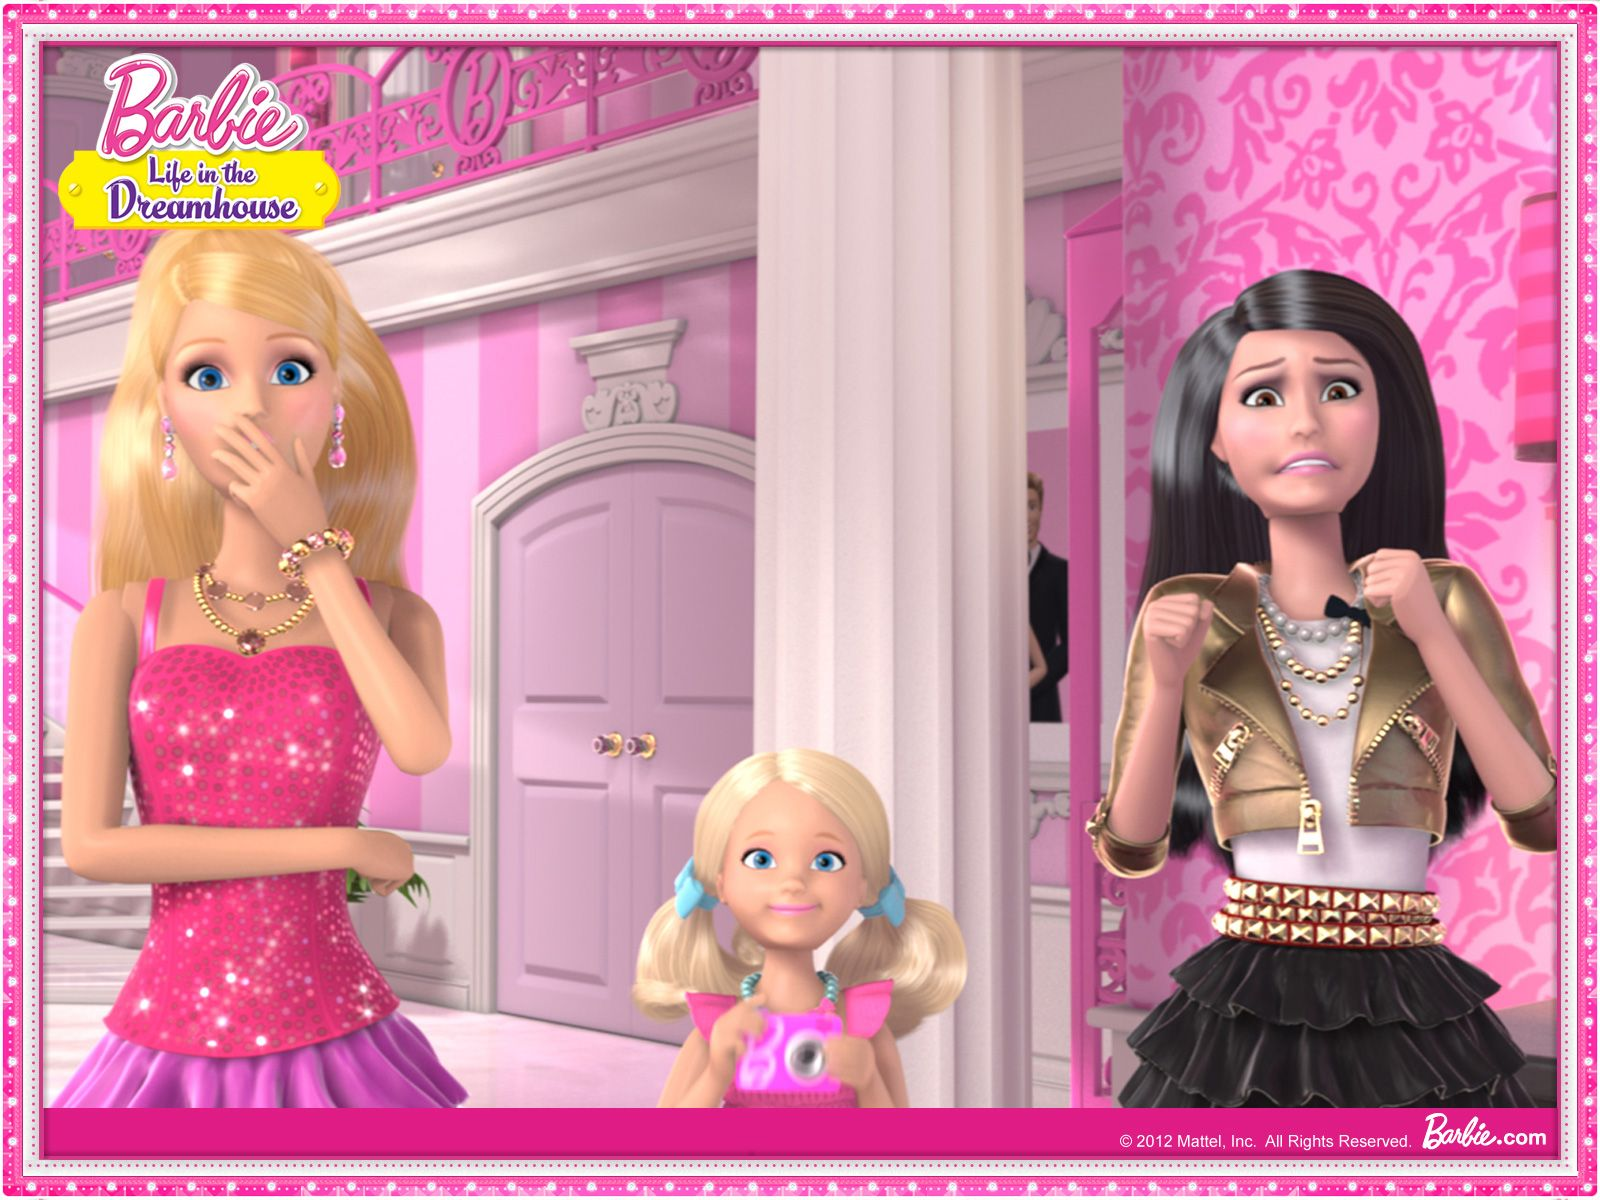 barbie girl life in the dreamhouse